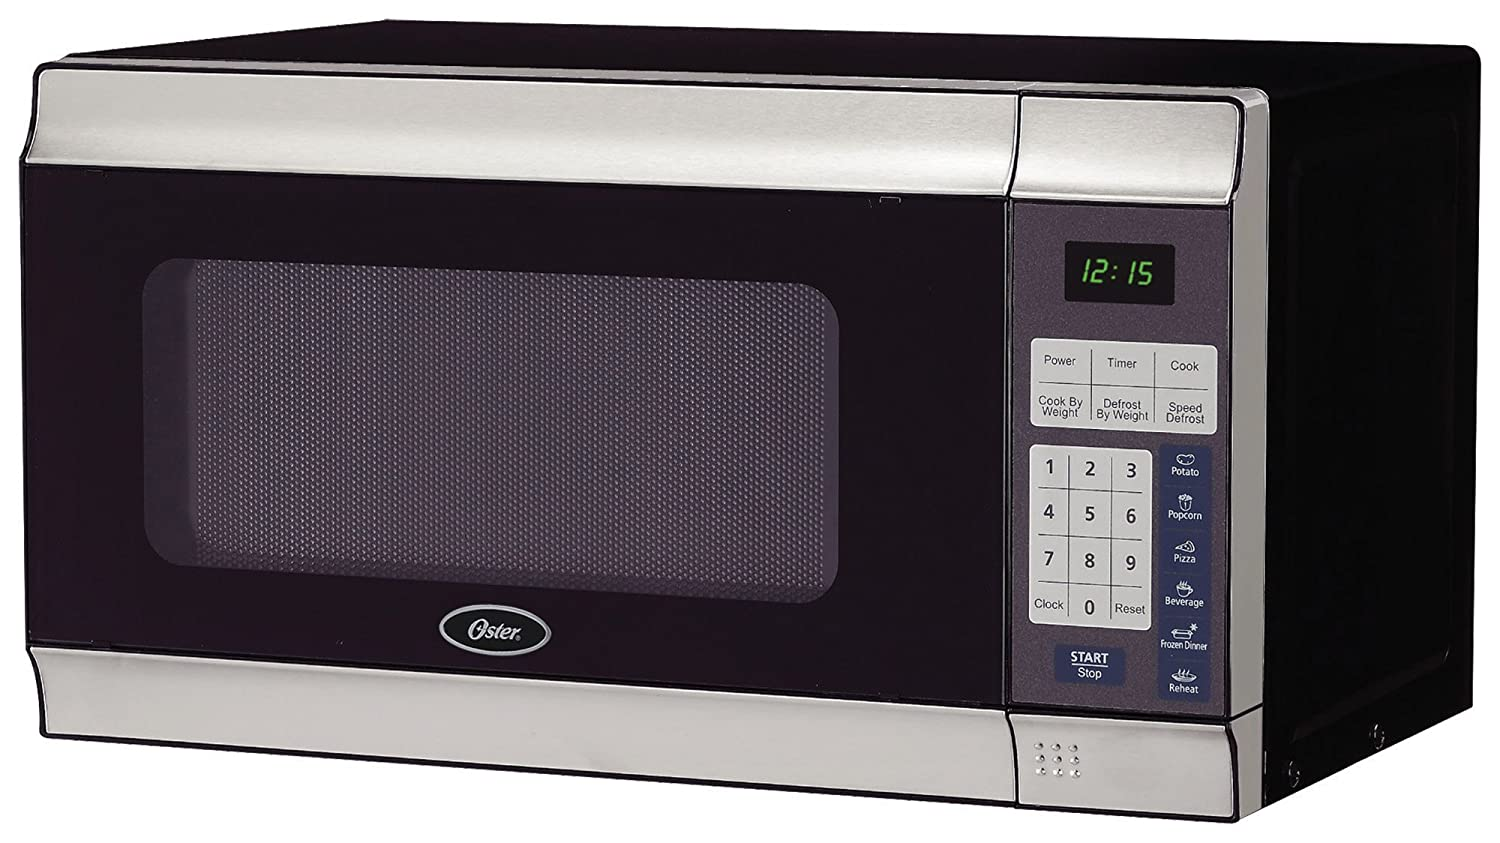 Oster Am780ss 0.7-Cubic Foot, 700-Watt Countertop Microwave Oven